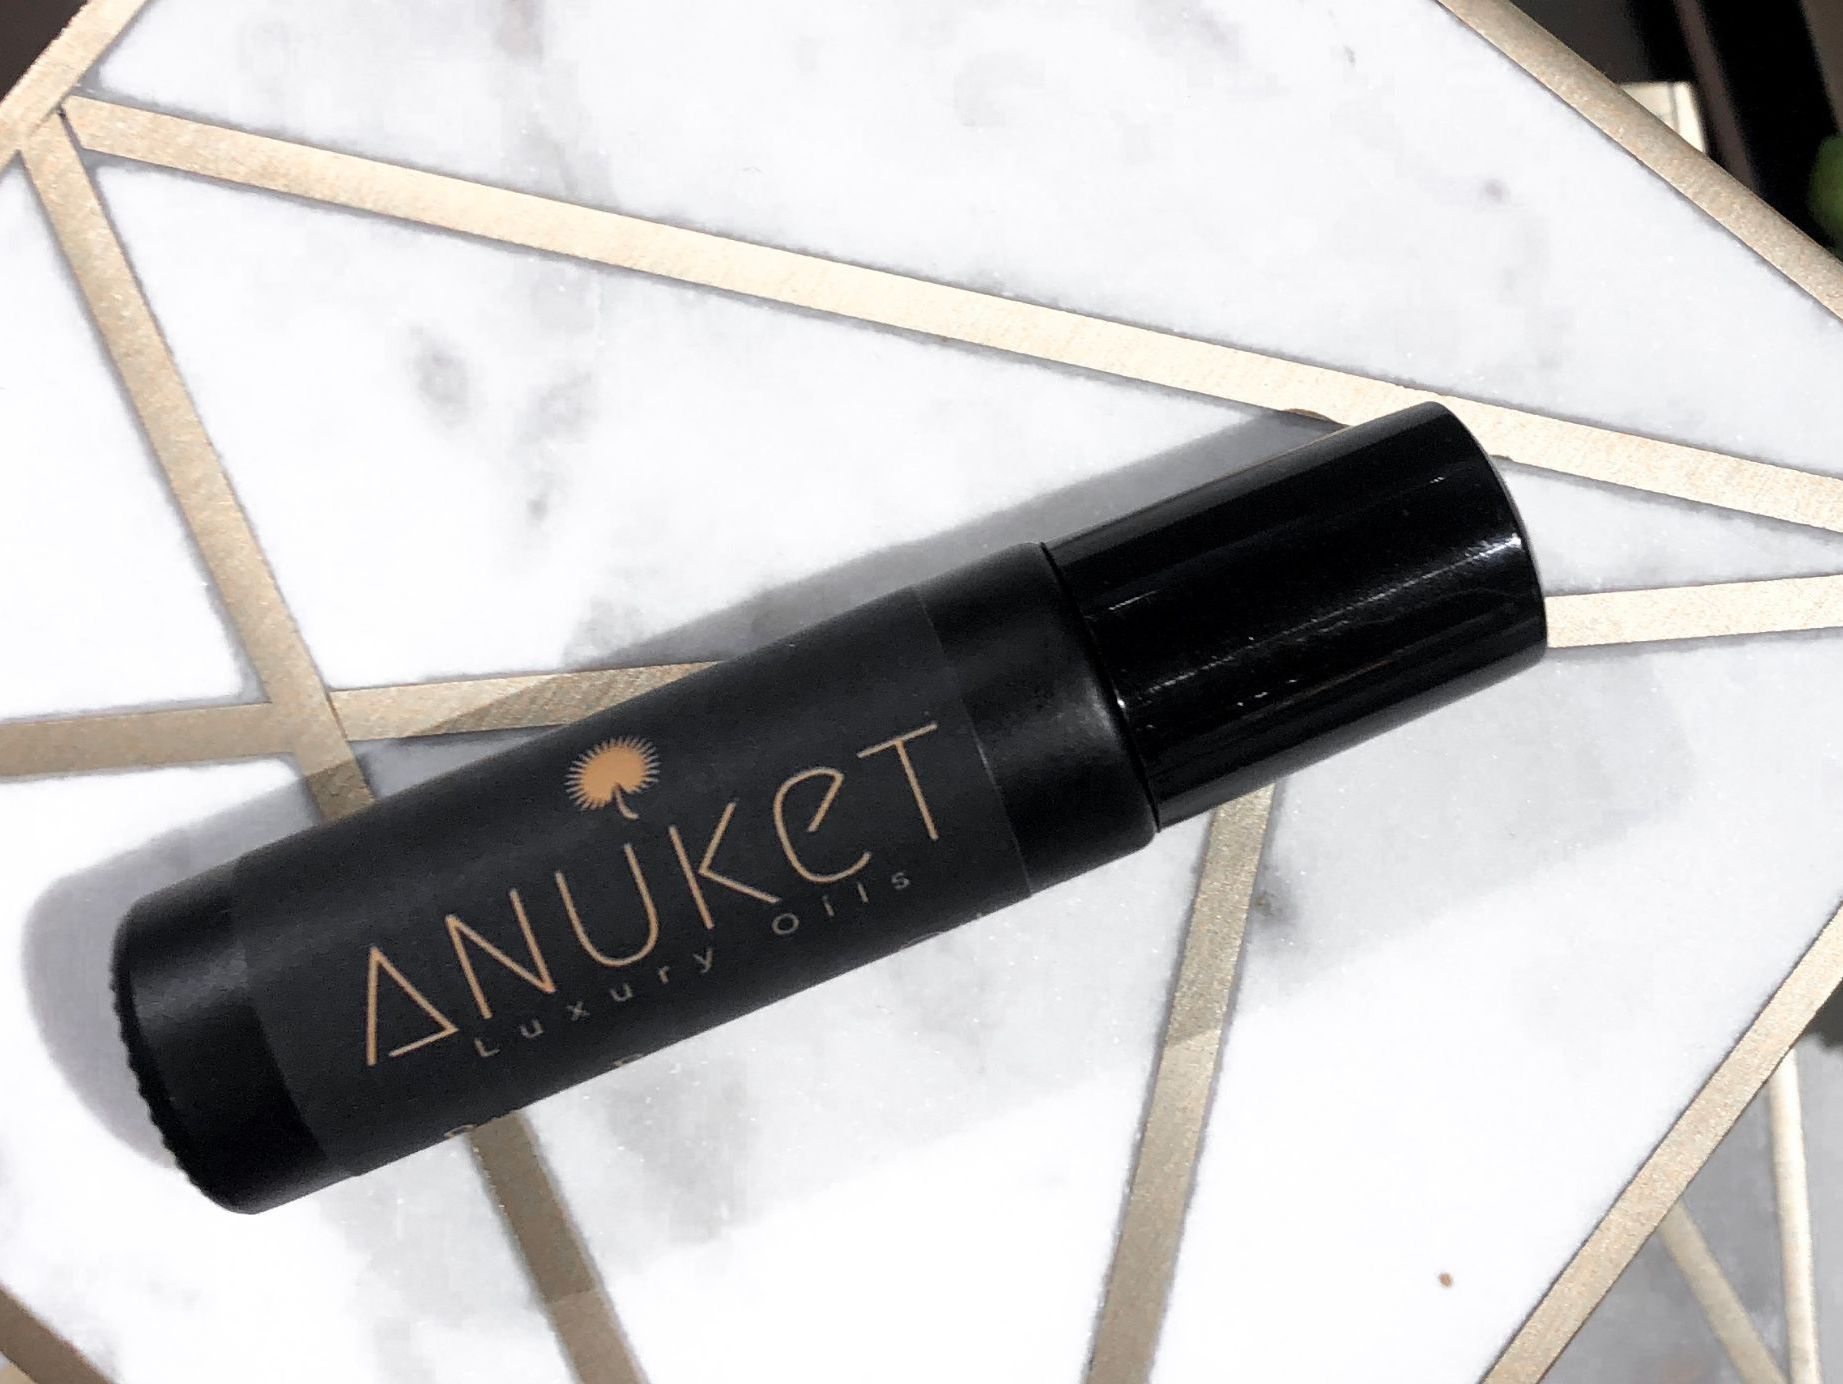 photo of Anuket Luxury Apothecary's Signature Scent on a gold and marble tile linking to blog with 5 helpful tips to make fragrance last longer